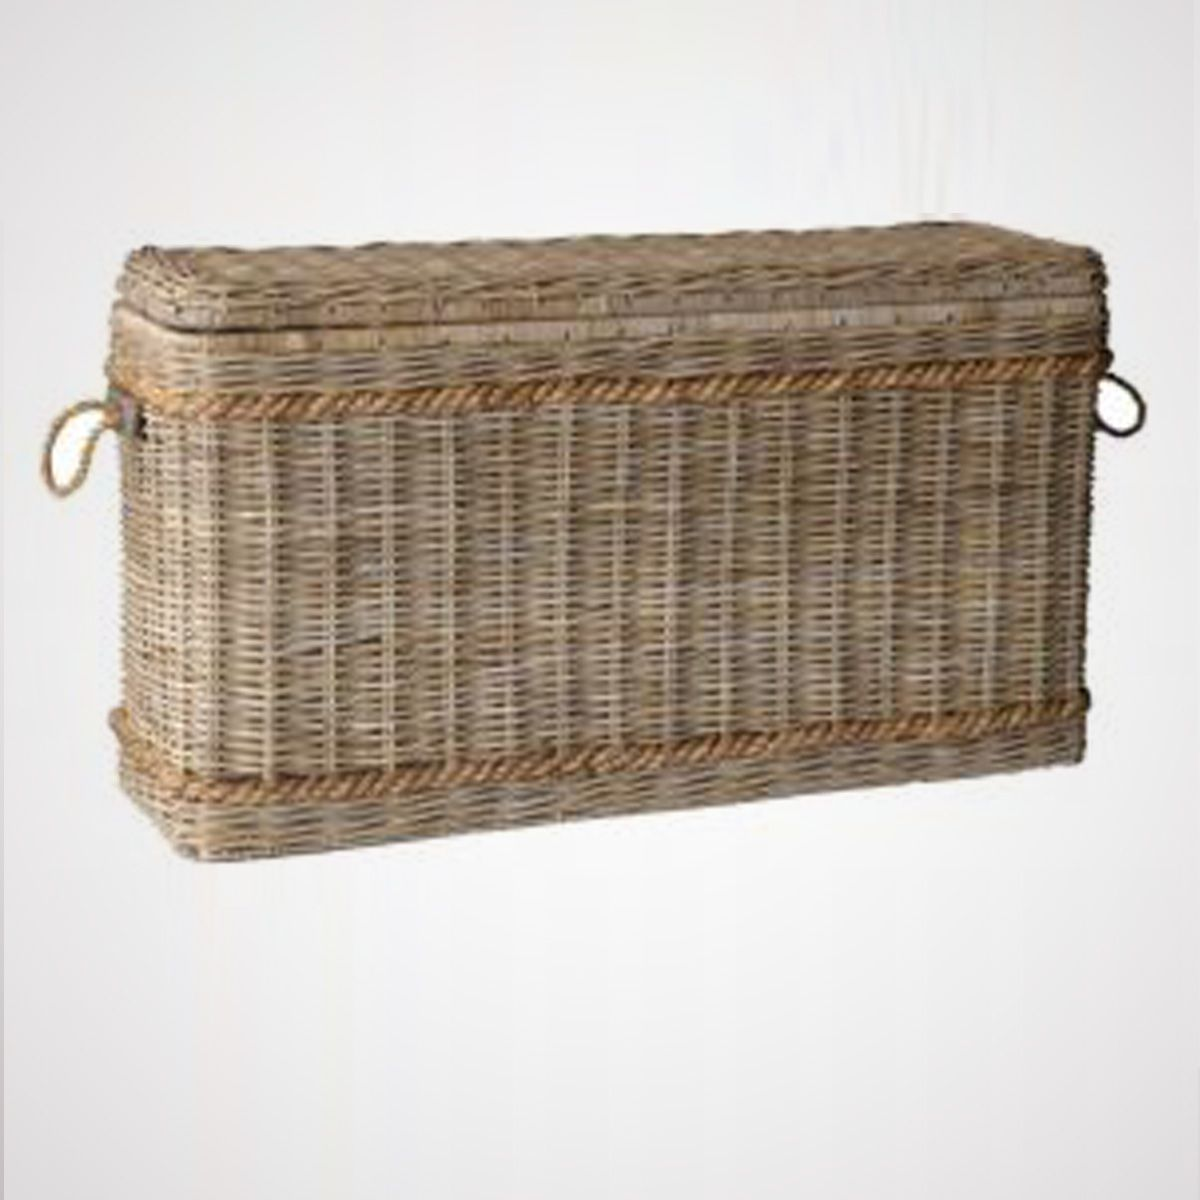 Nantucket Washed Woven Rattan Basket Extra Large ourboathouse.com 55